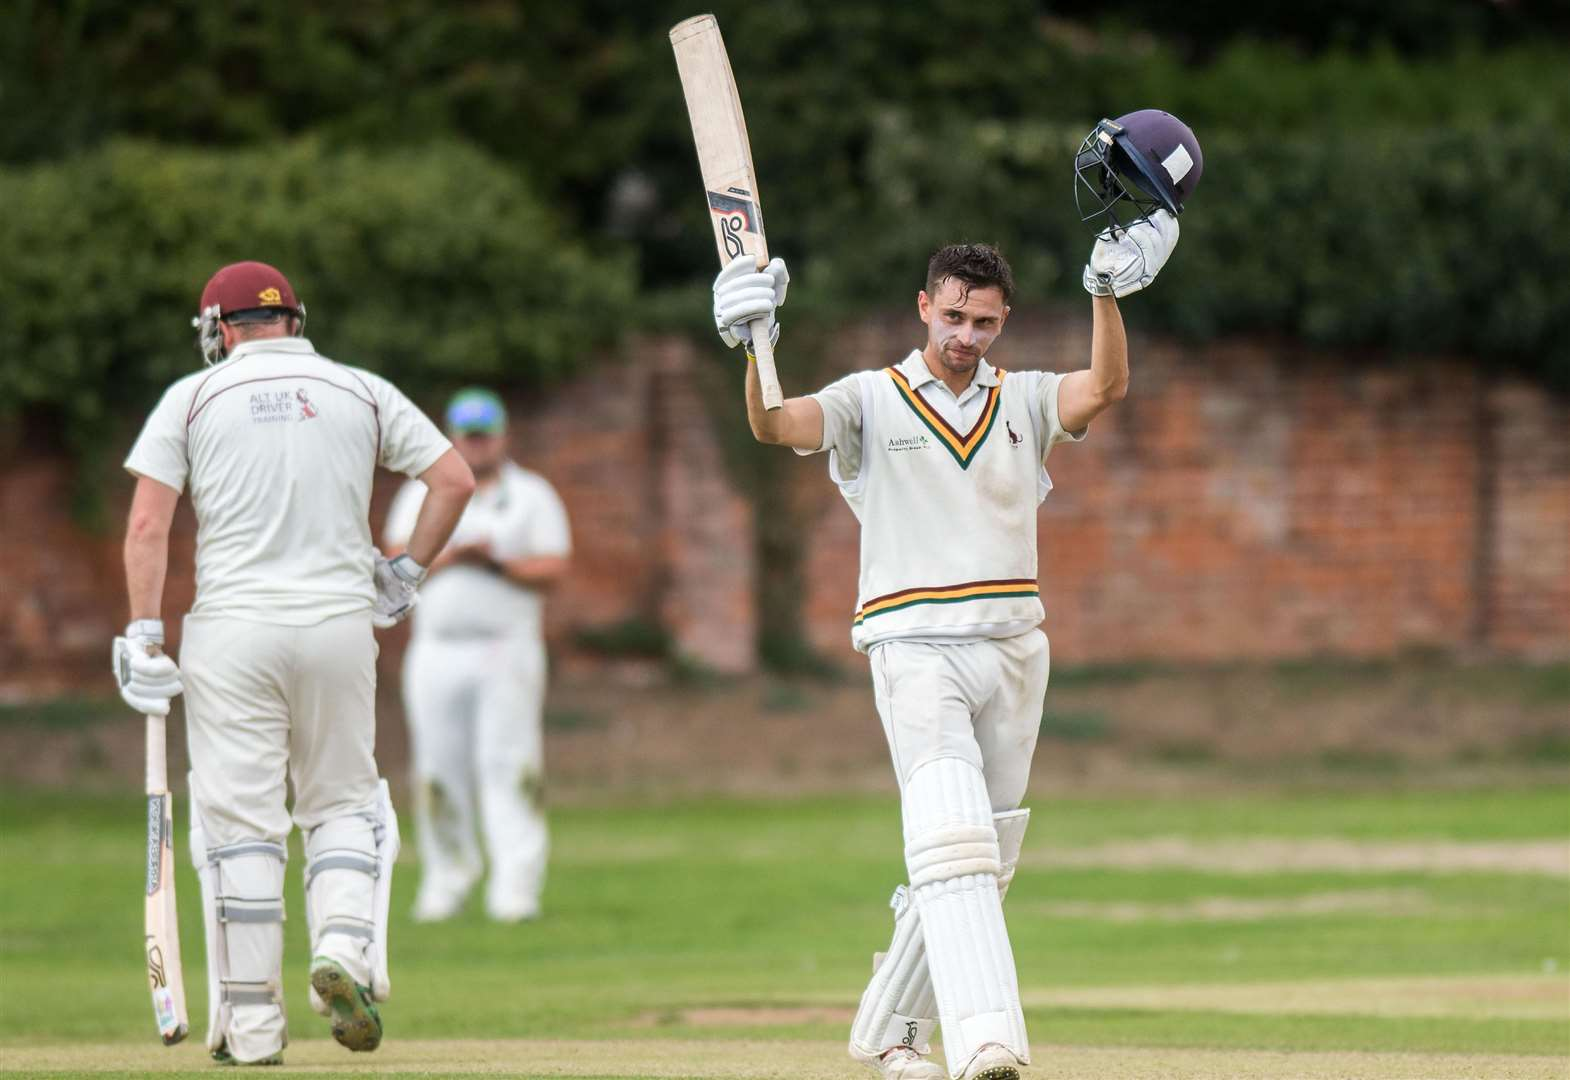 Mansfield's century helps to wrap up second title